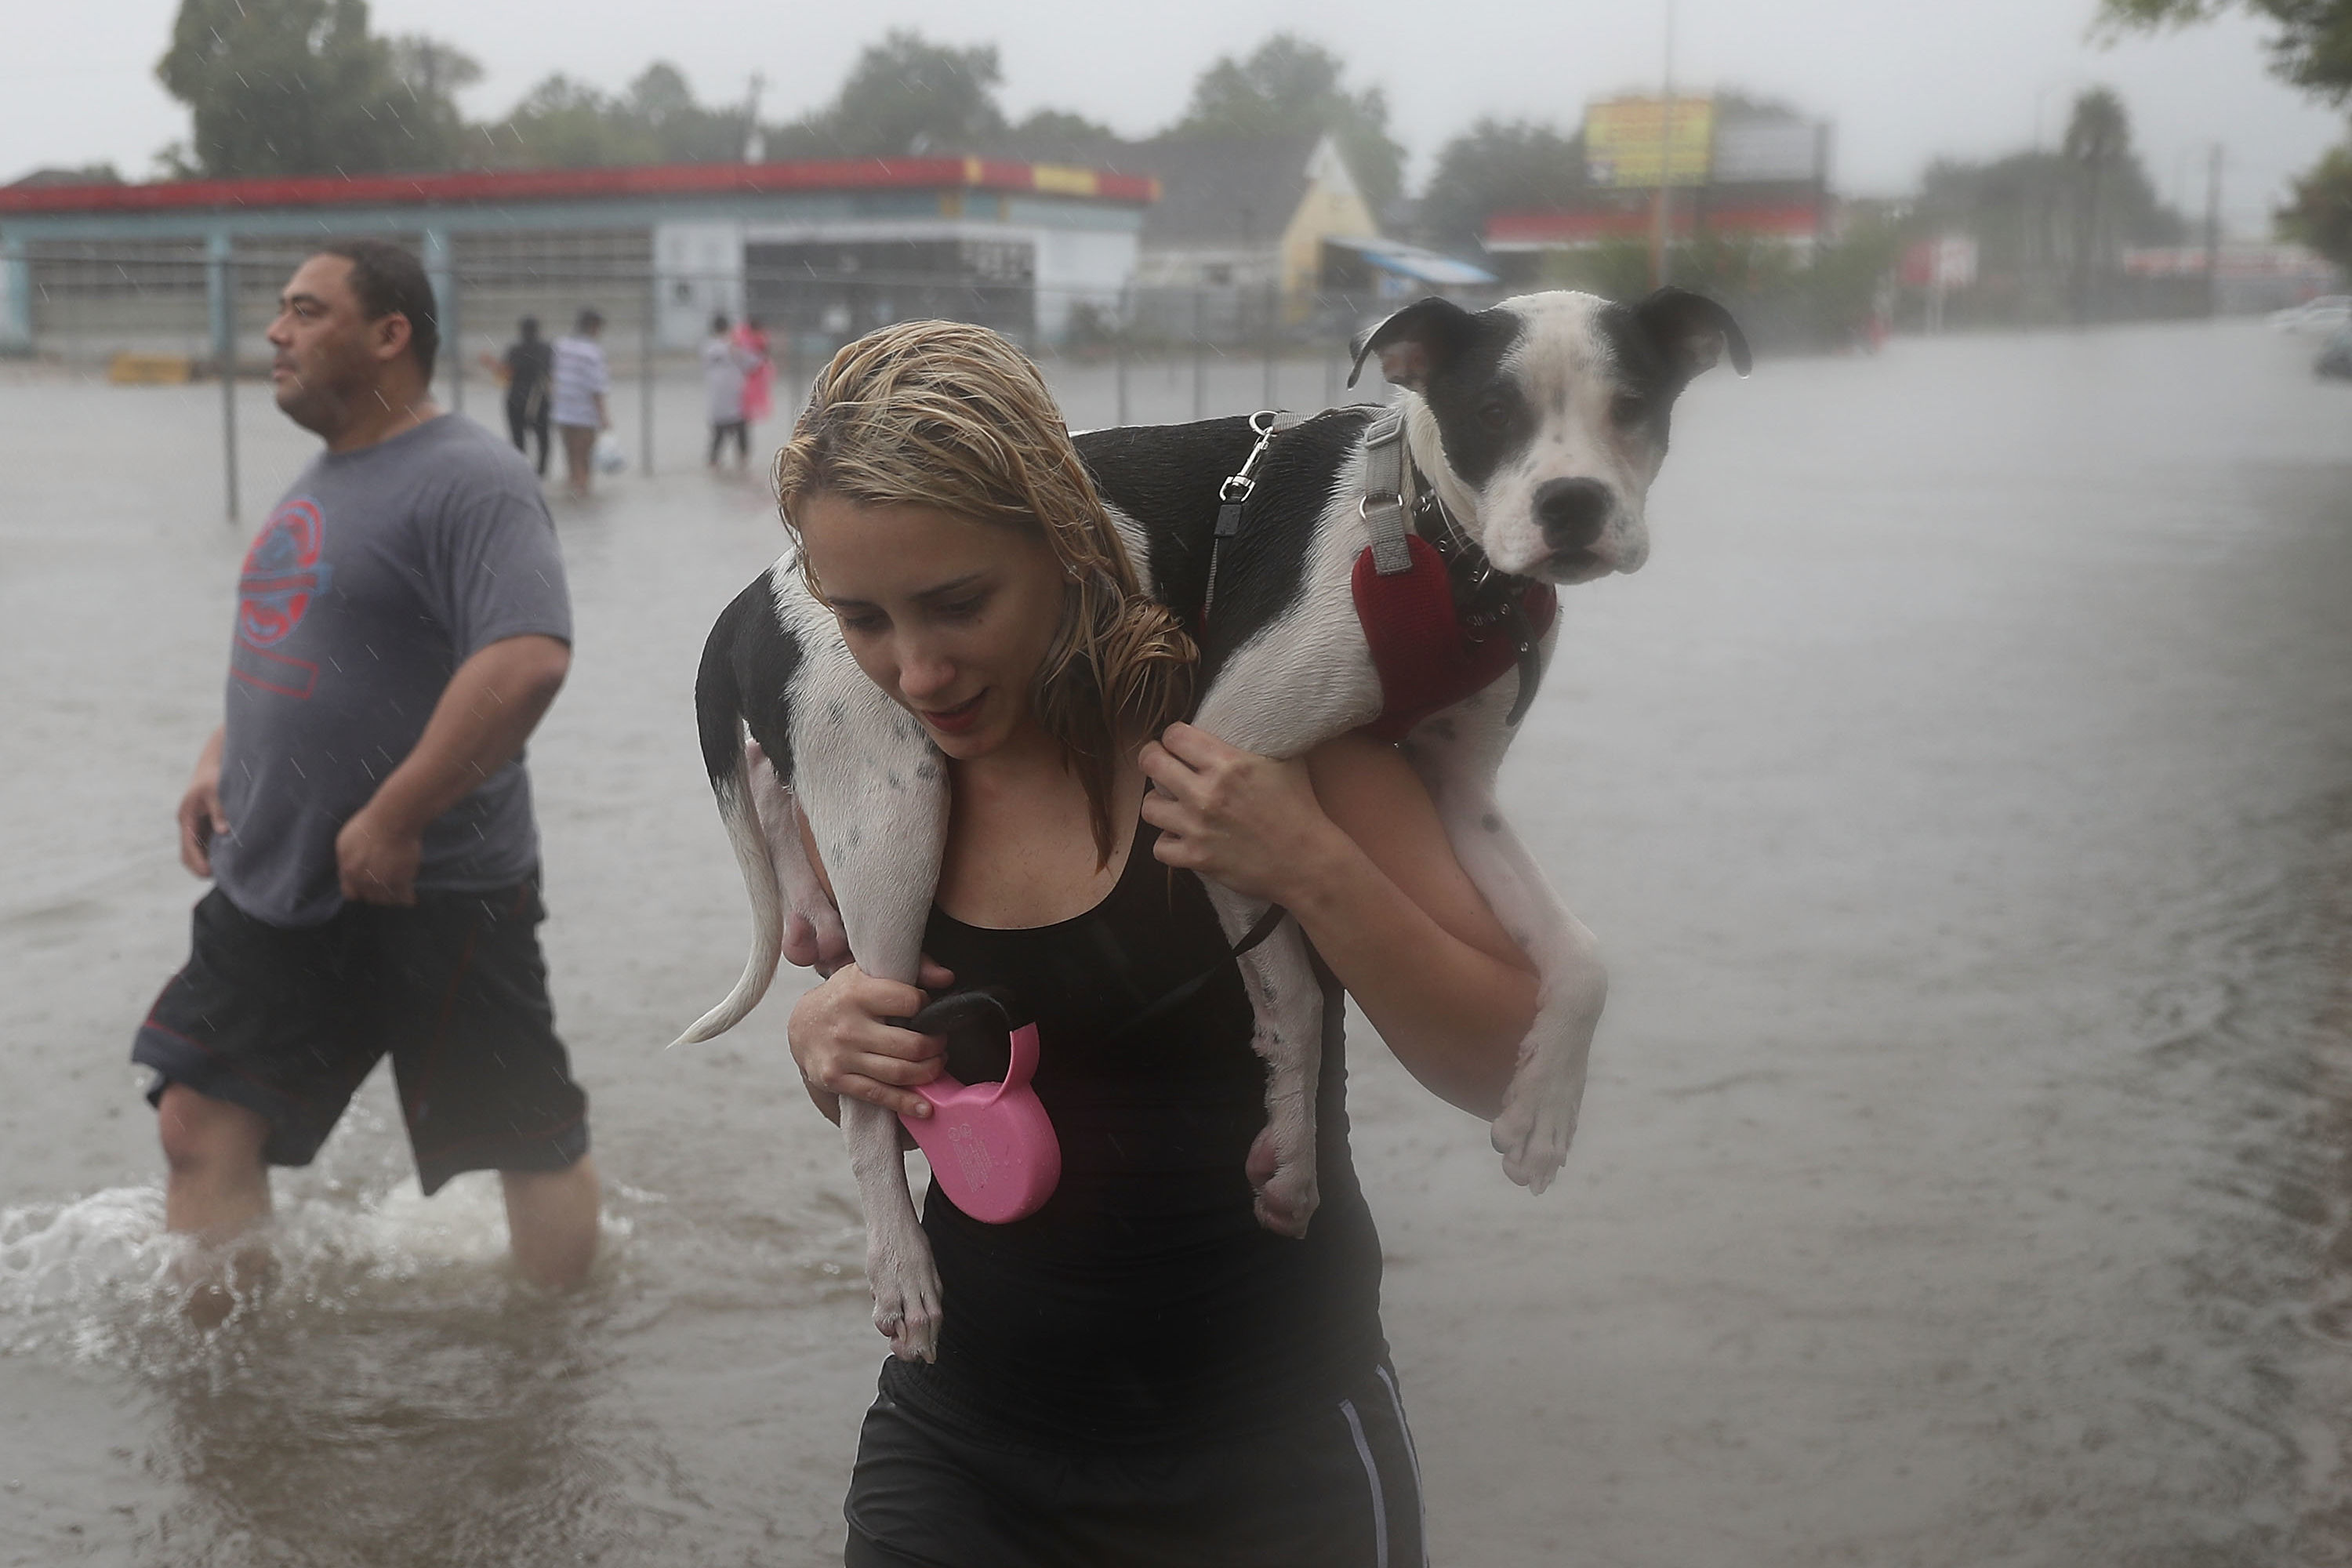 Preparing for Hurricane Irma? Don't Forget About Your Pets